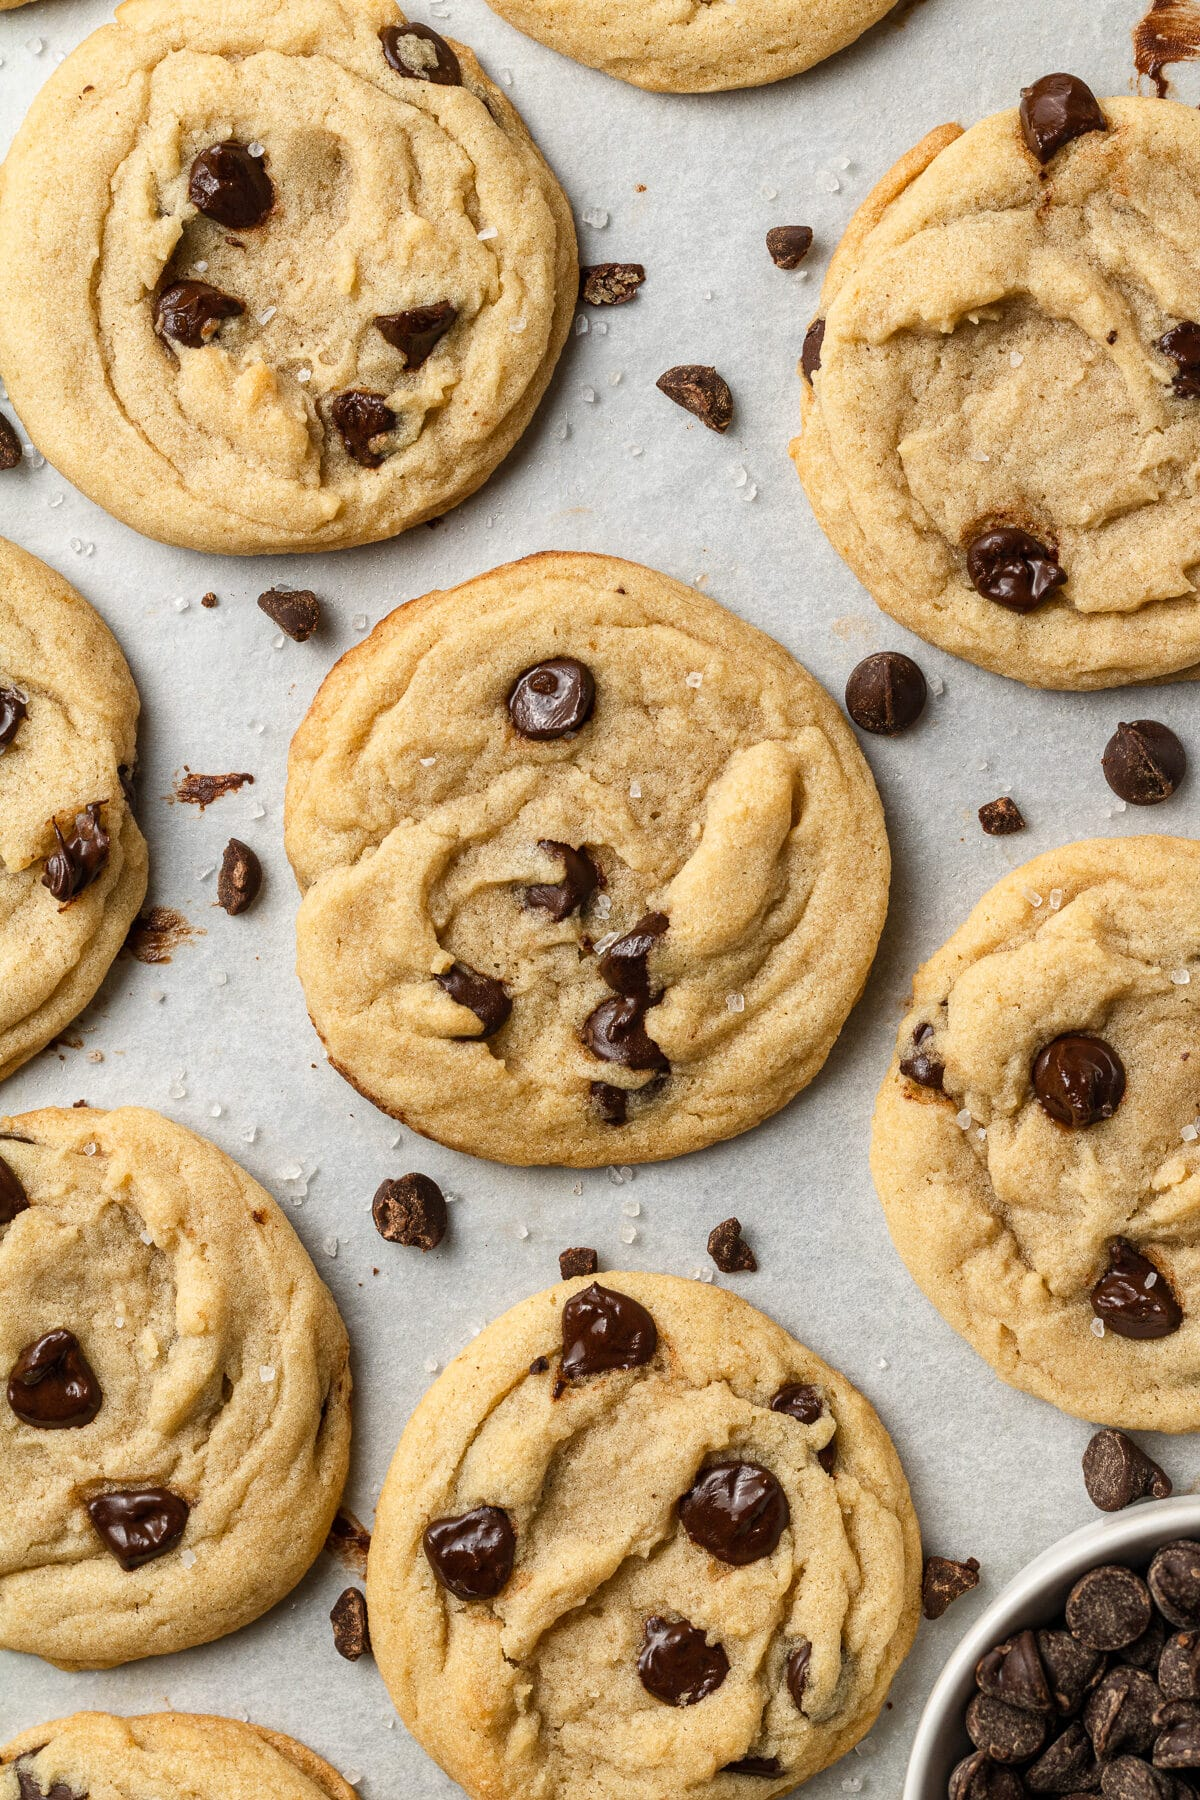 dairy free chocolate chip cookies on a baking sheet with chocolate chips scattered around